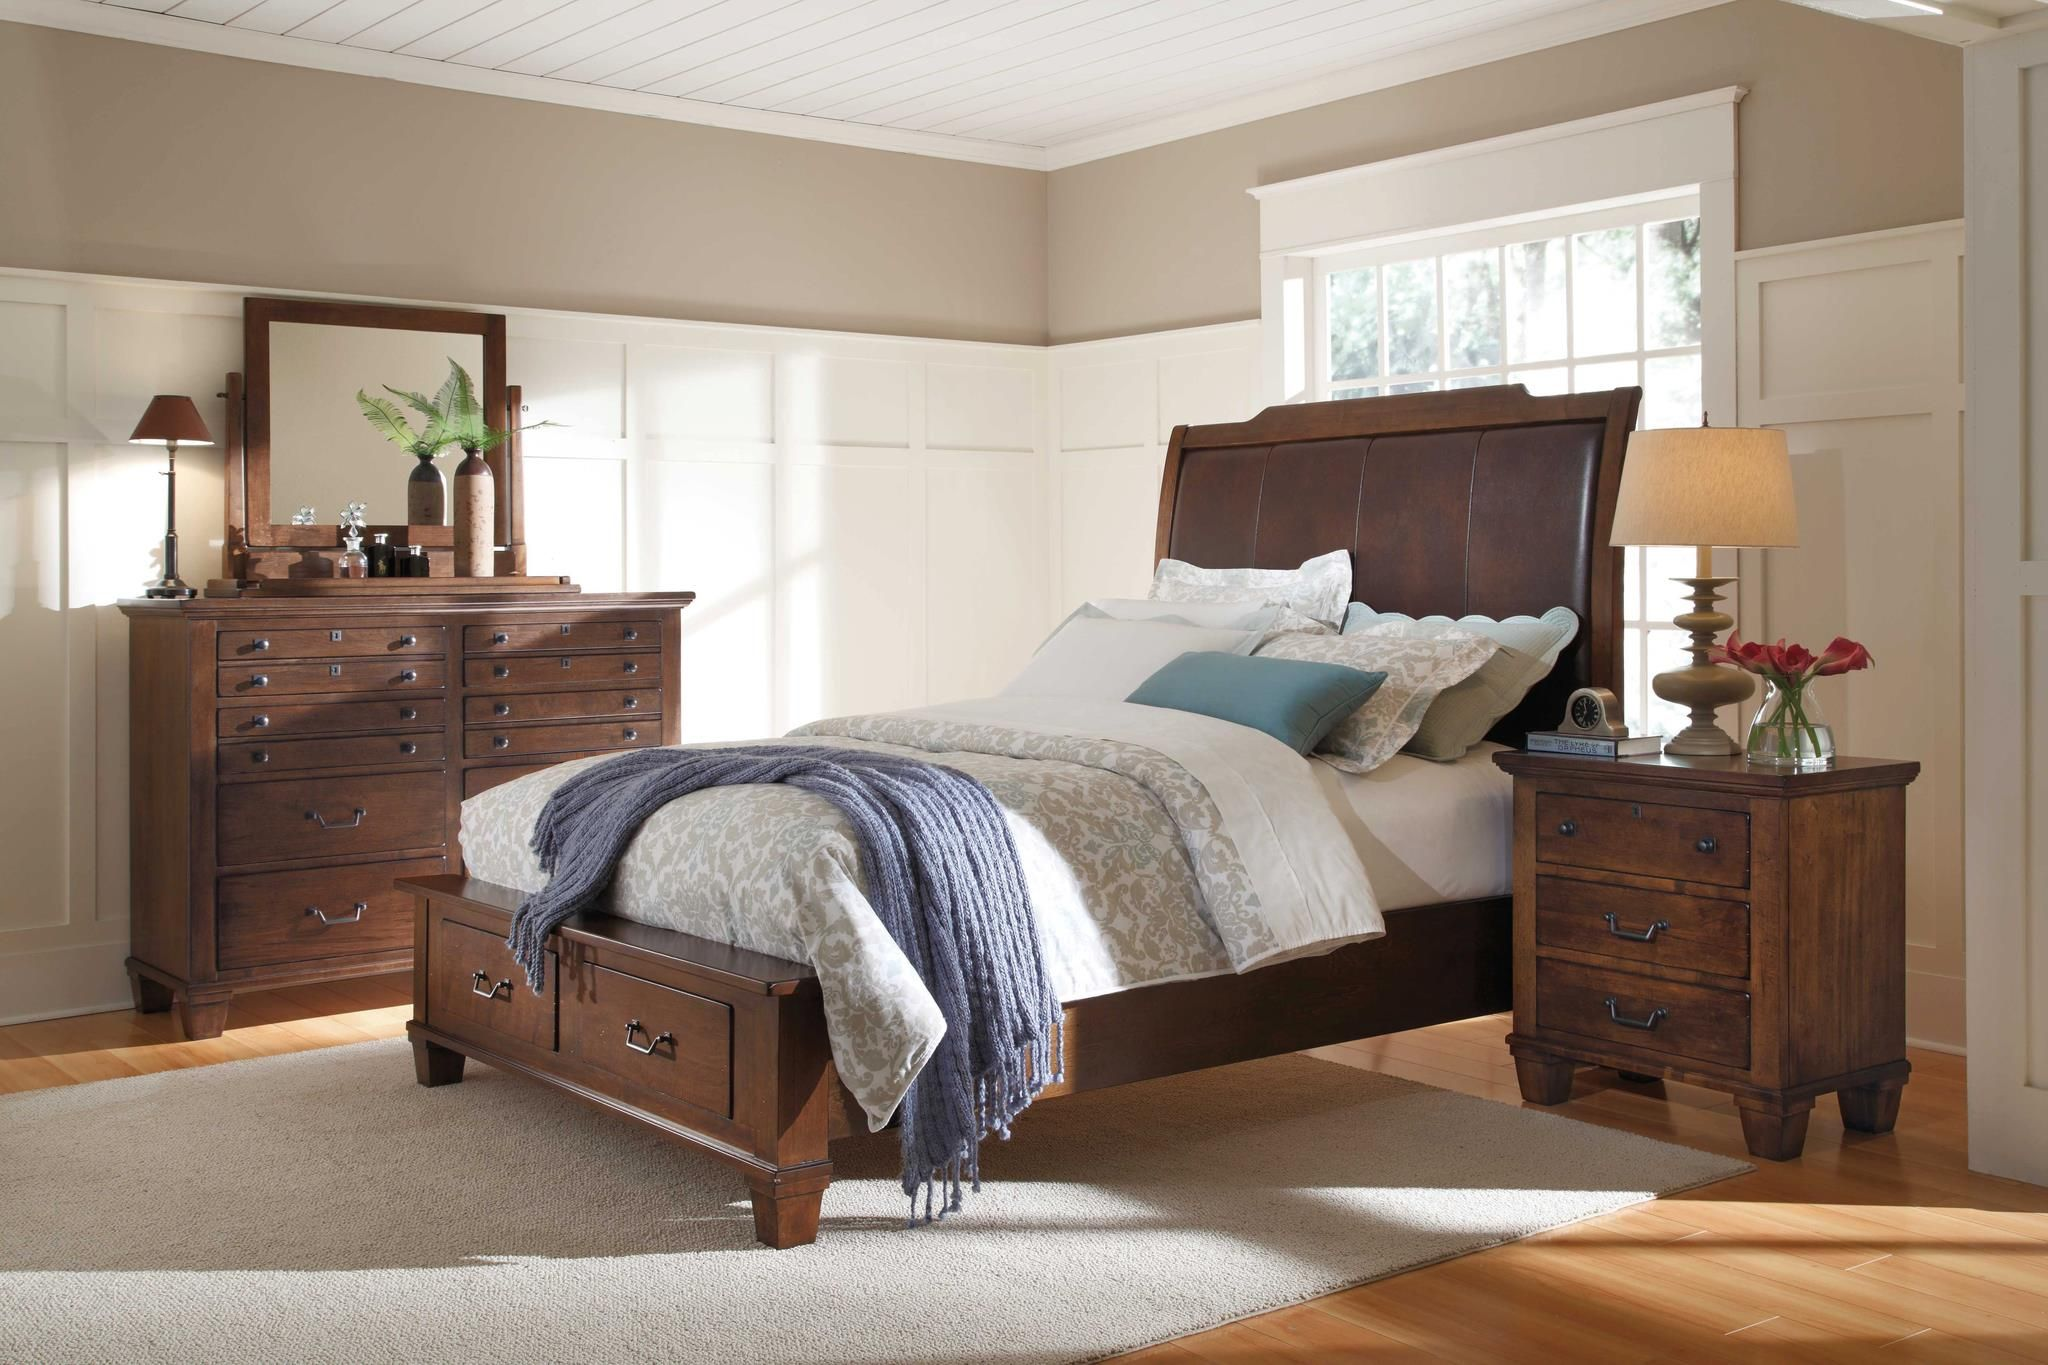 The Winston Bedroom collection from Kincaid furniture